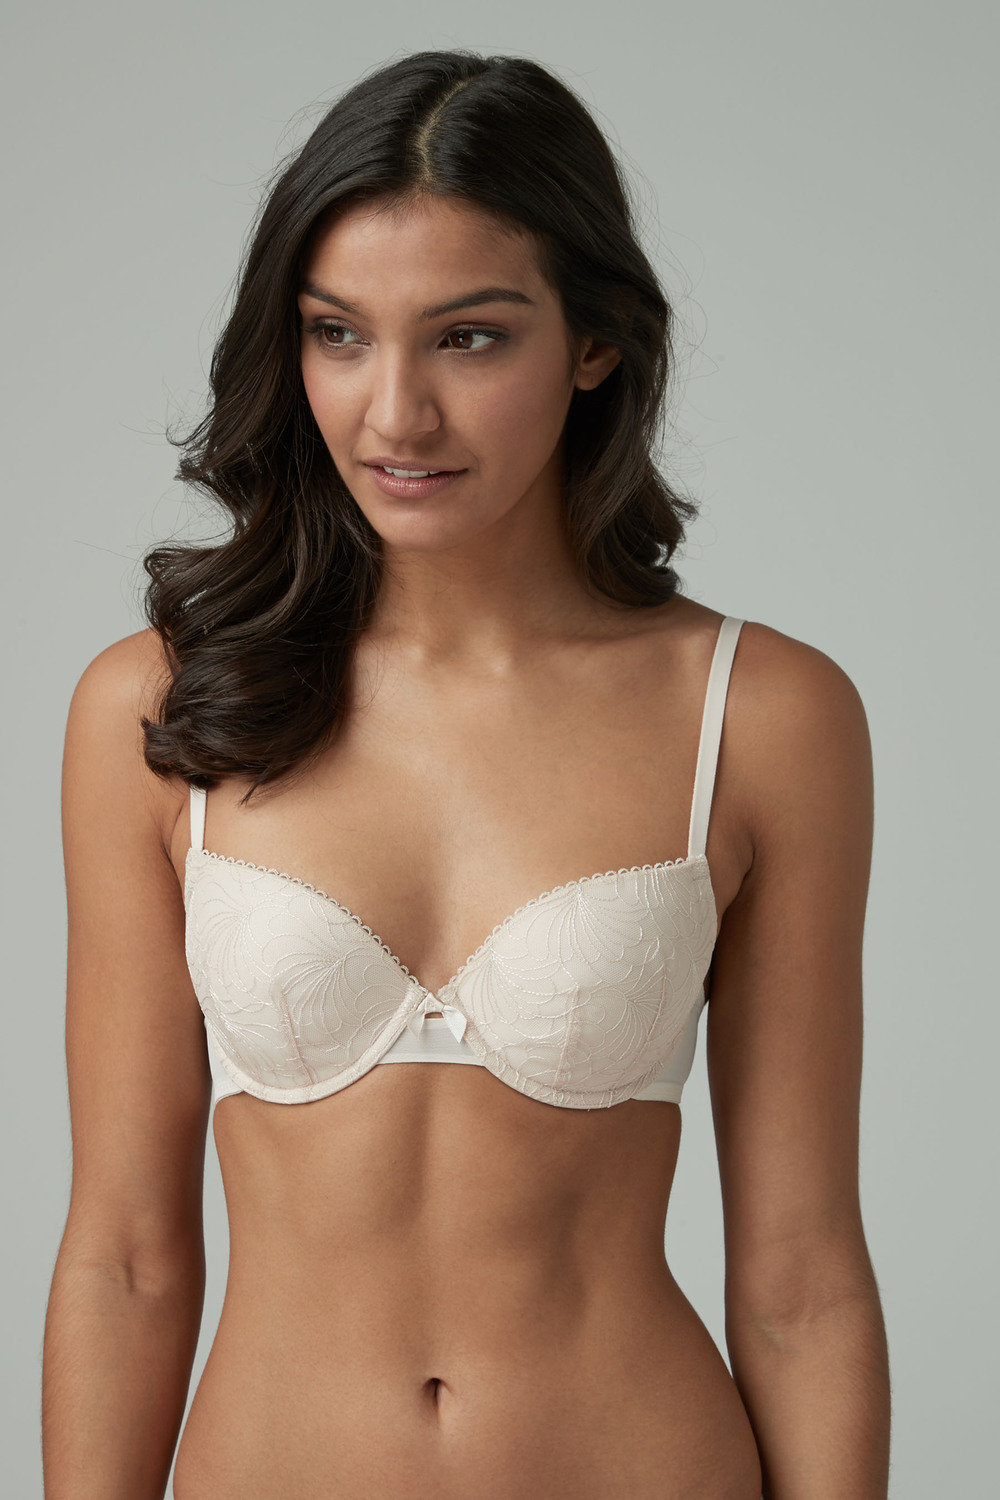 eeac64611b Next Emily Push-Up Embroidered Balcony Bras Two Pack Online